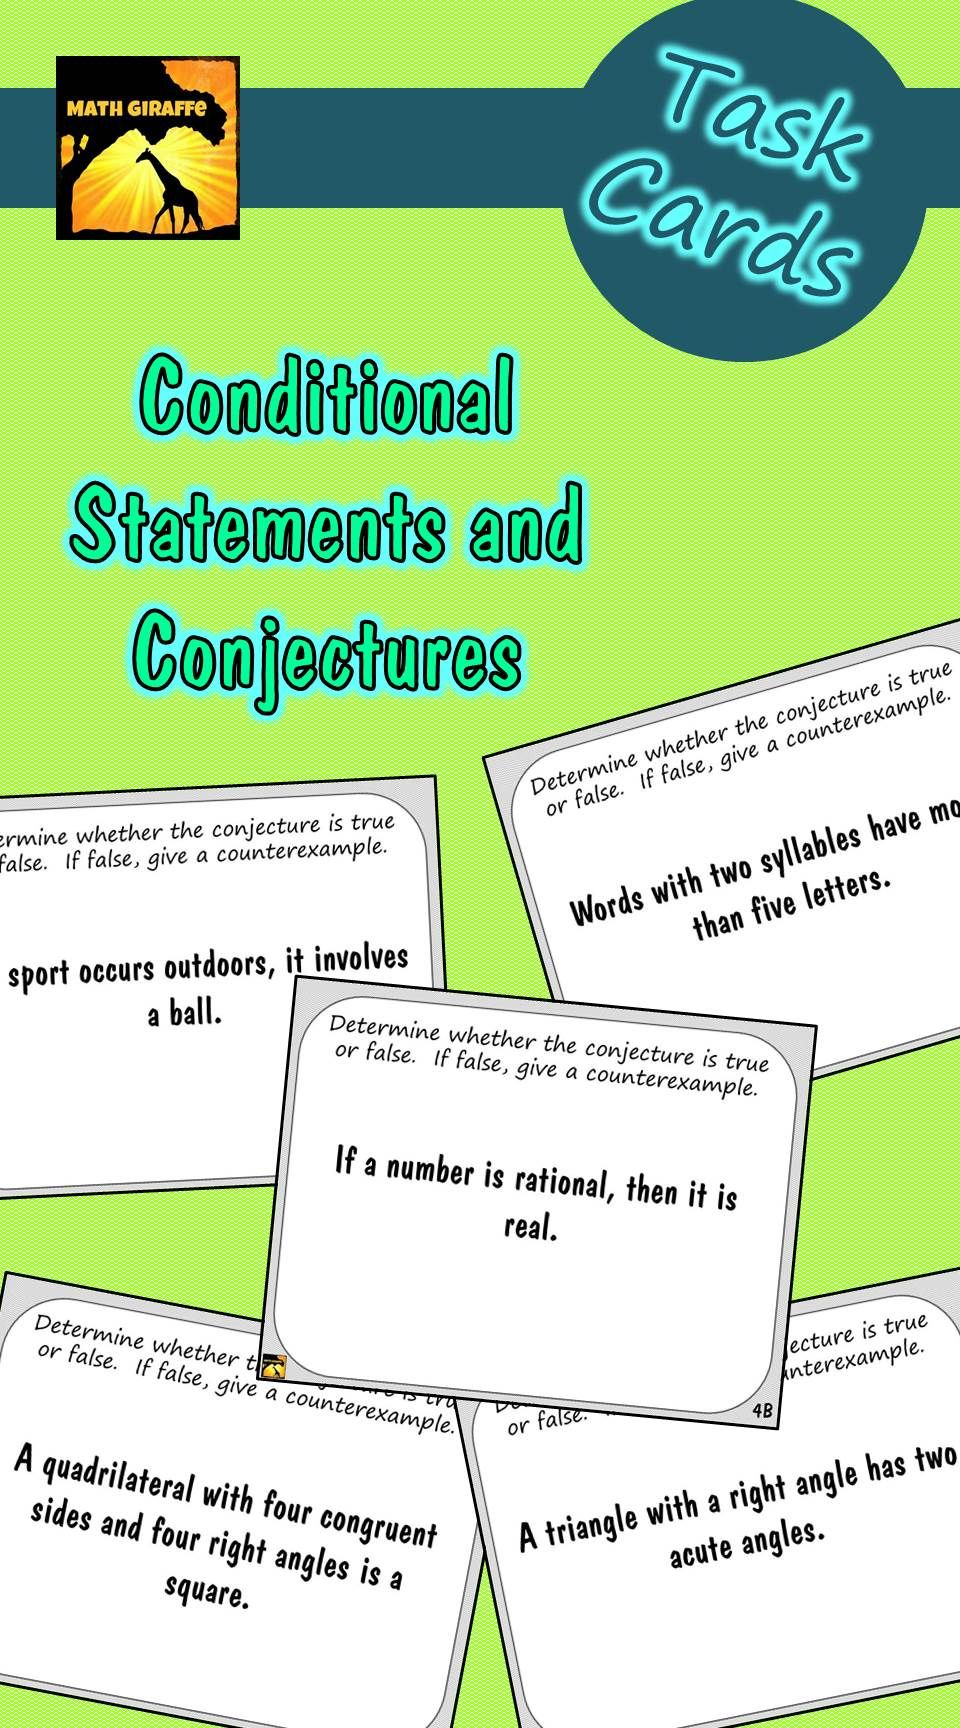 worksheet Converse Inverse Contrapositive Worksheet task cards conditional statements and conjectures converse math activities